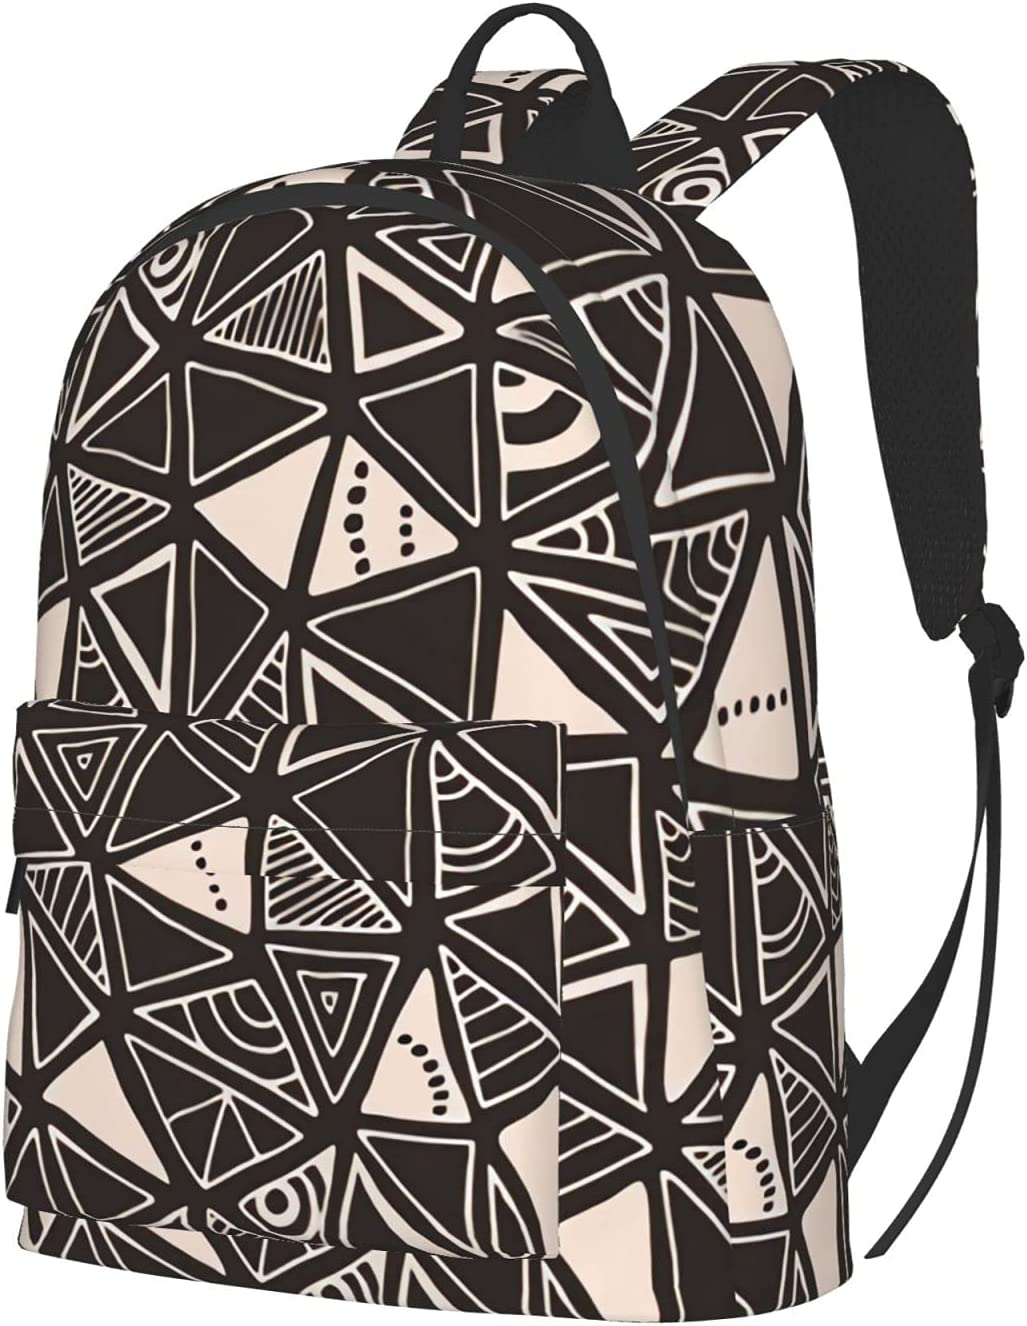 triangles - black and Popular overseas cream favorite Backpack Unis Laptop Travel